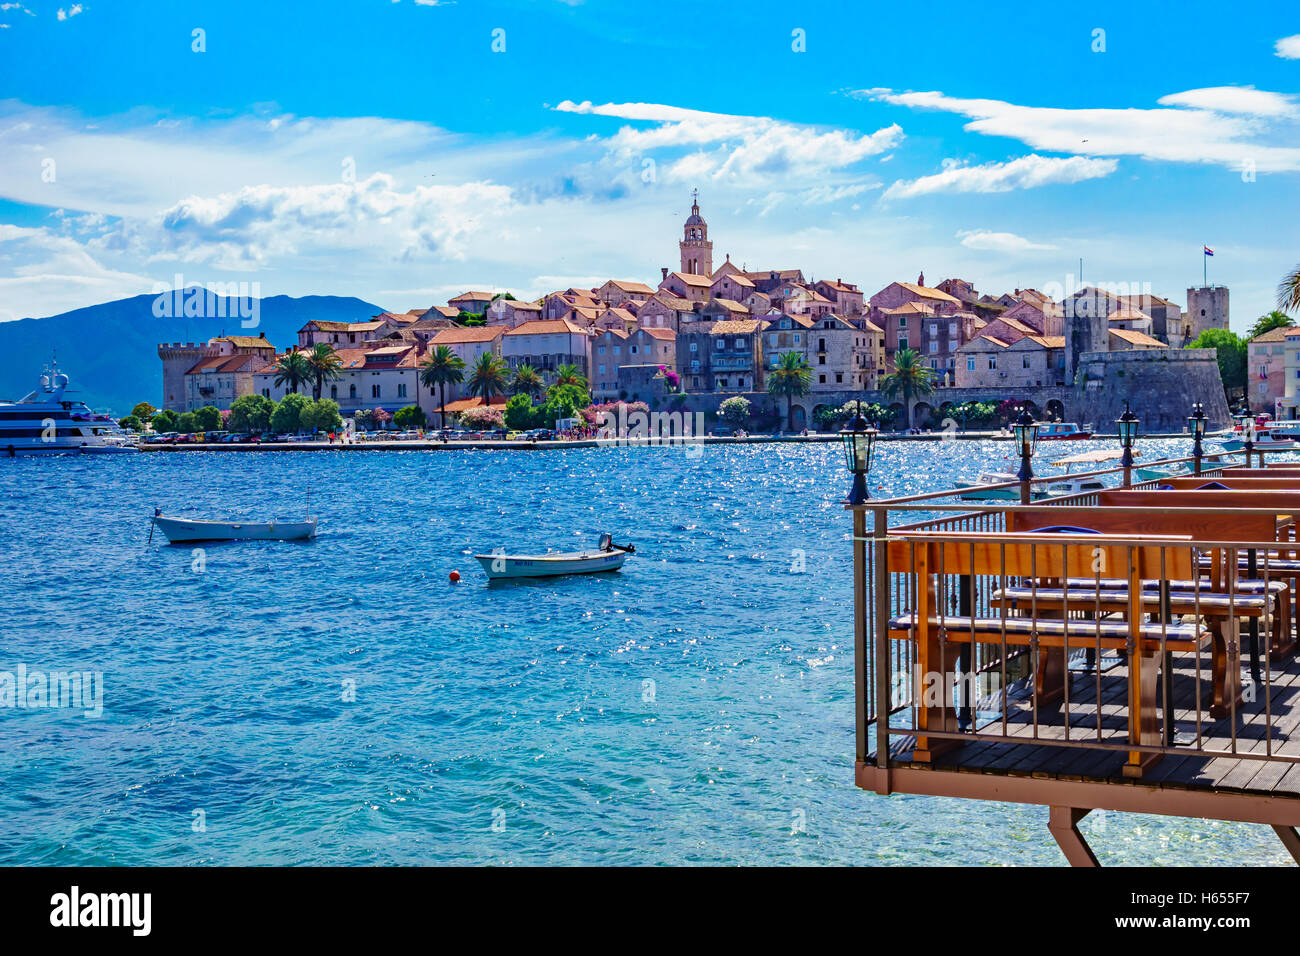 KORCULA, CROATIA - JUNE 26, 2015: Scene in the old town (west side), with the walls, houses, boats, locals and visitors, - Stock Image